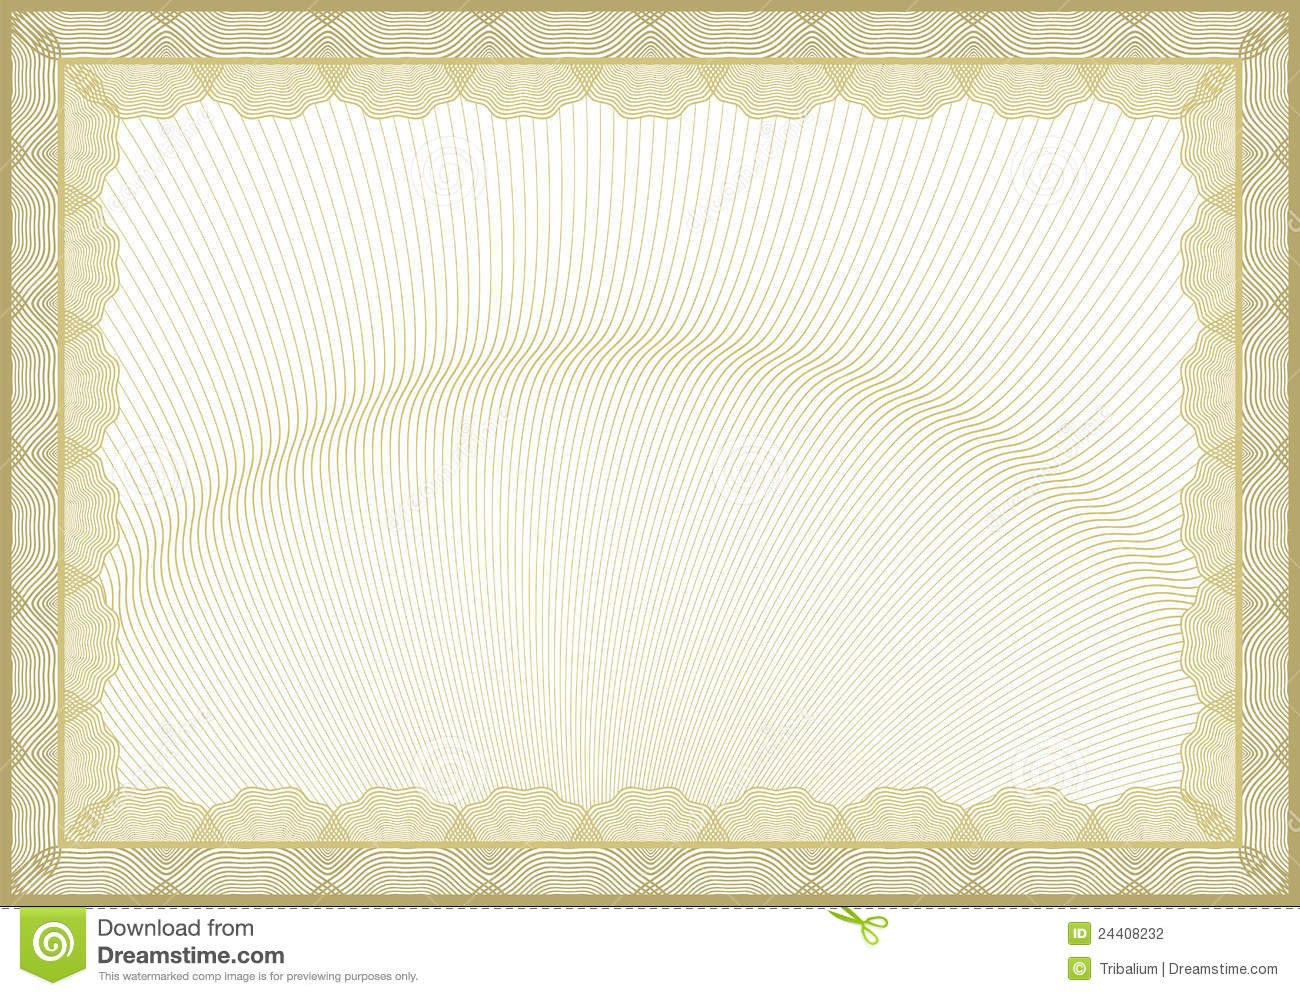 request for documents template  Document background stock vector. Image of paper, abstract ..